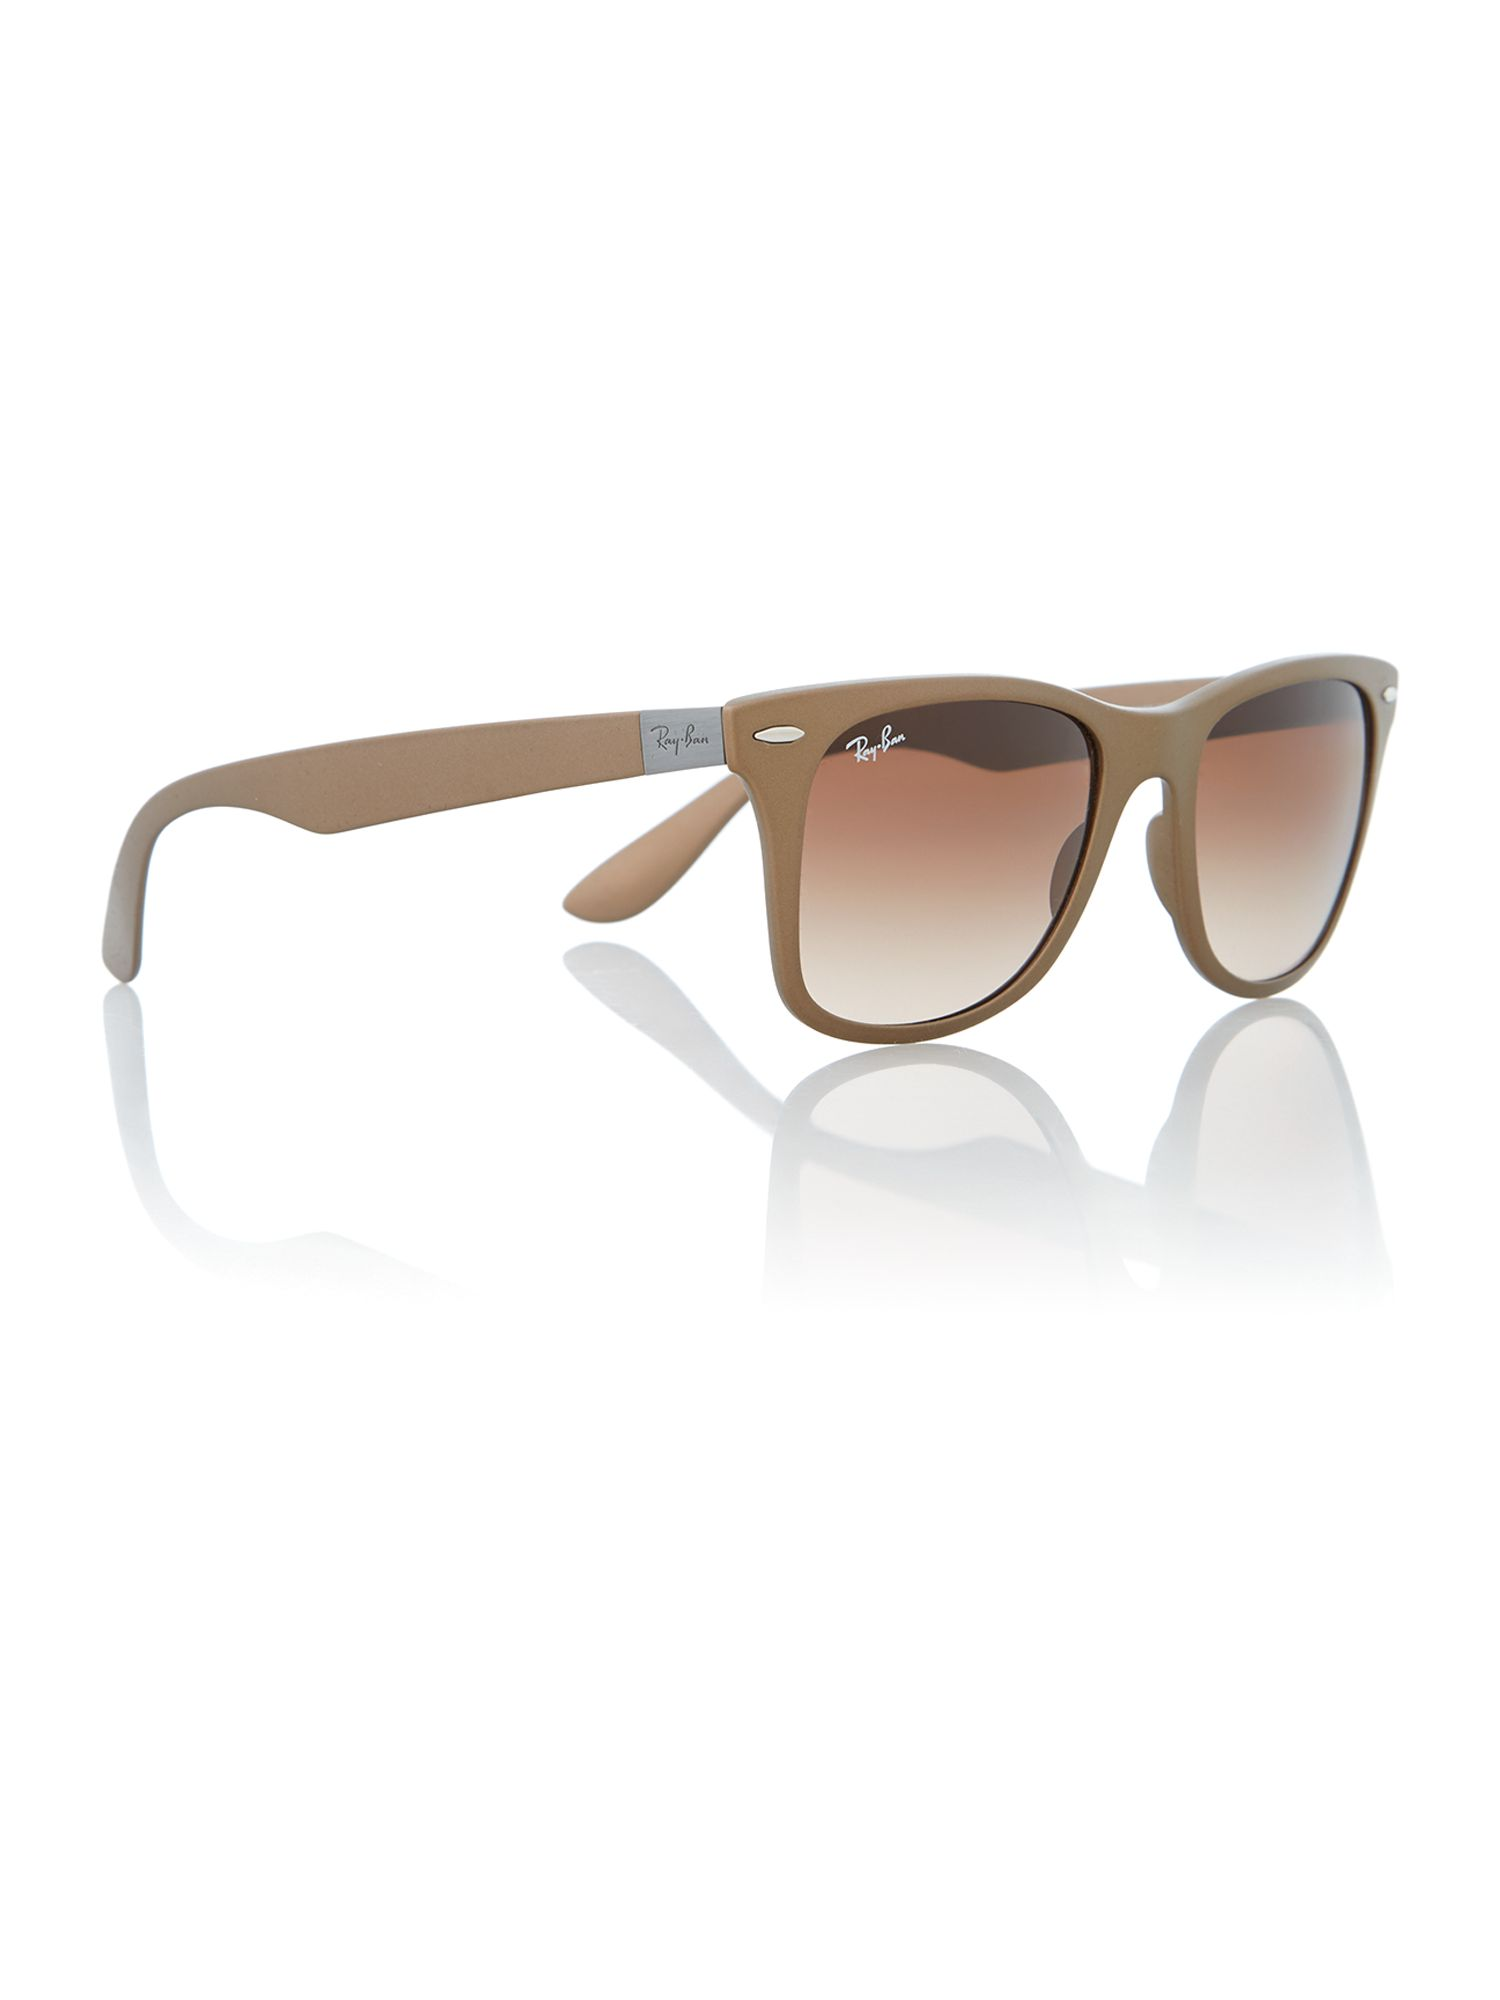 Ray-ban men`s brown square sunglasses